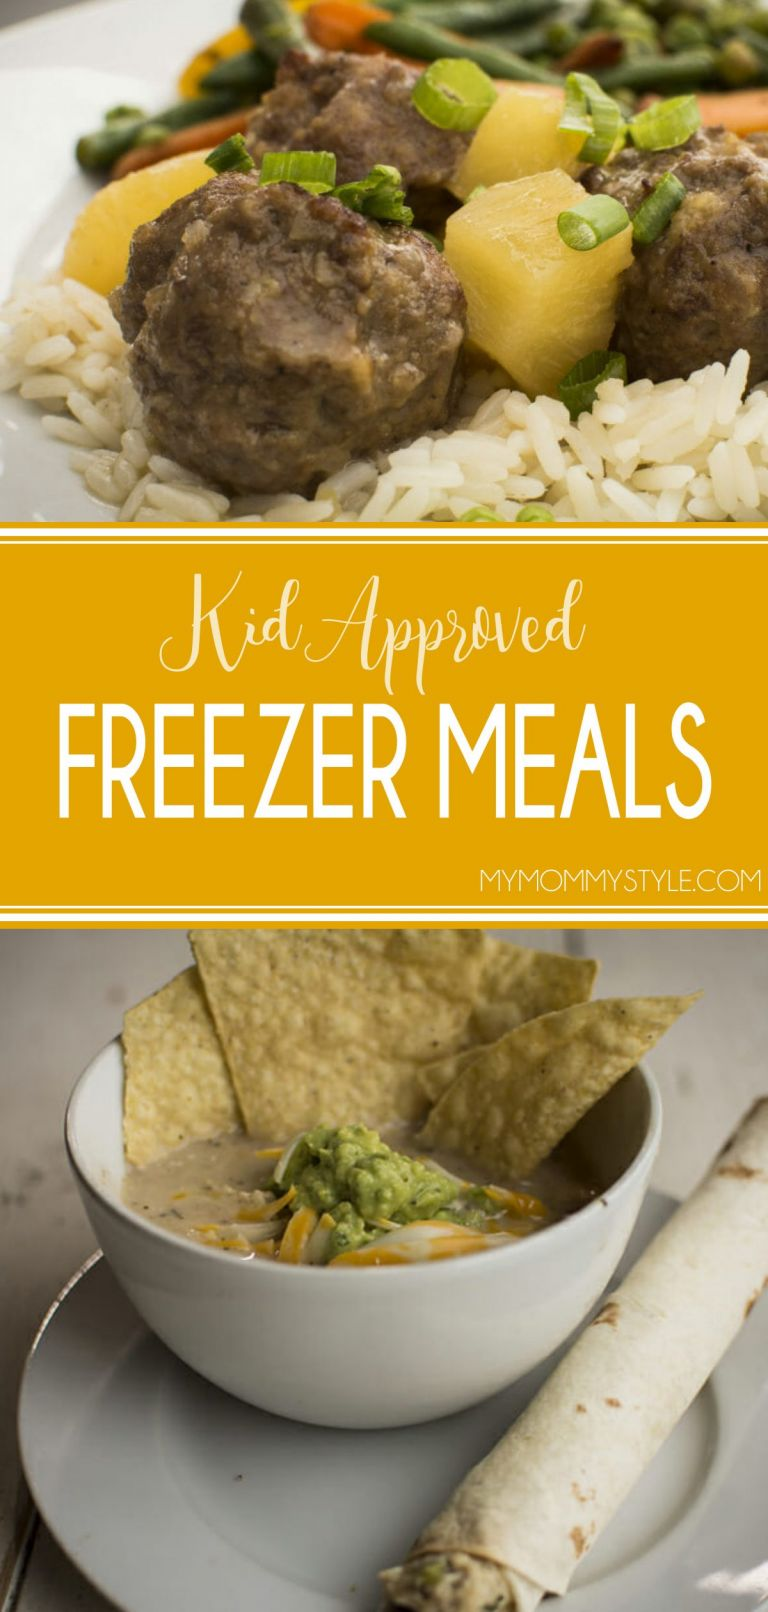 Kid approved freezer meals